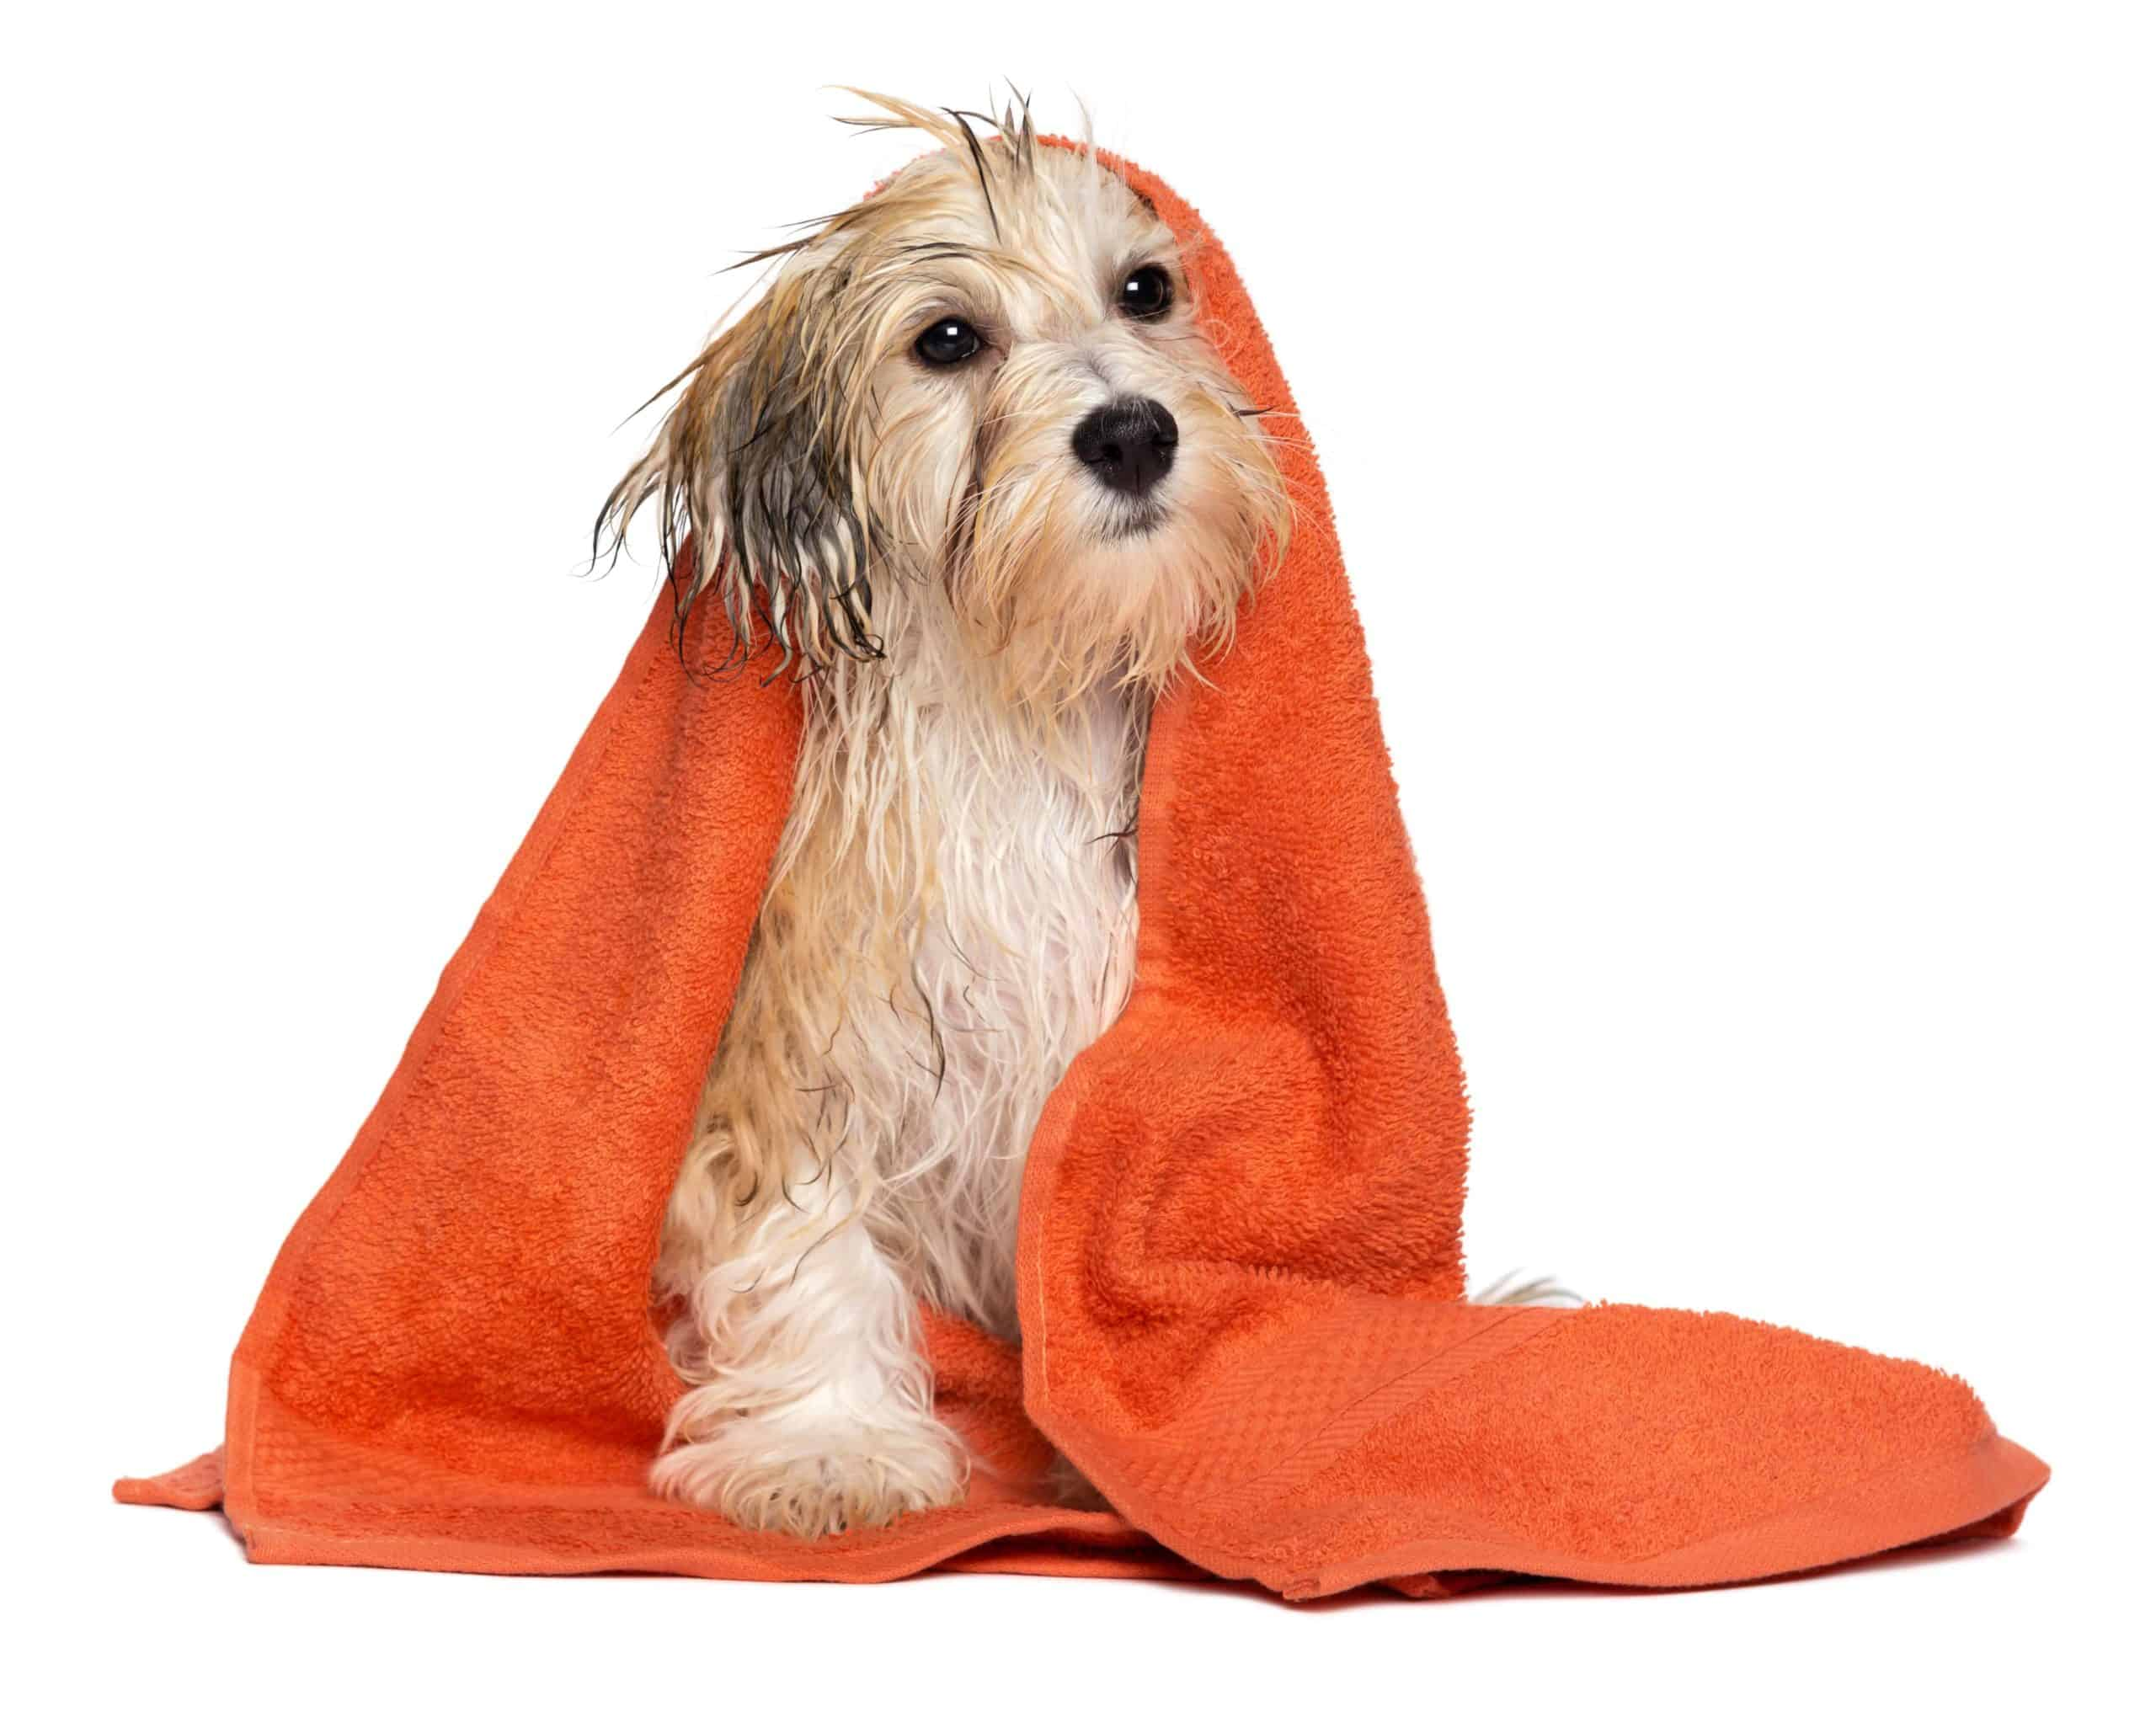 Mixed breed dog is wrapped in a towel after a bath. Most dogs fear having a dog bath. To reduce anxiety, use warm water and the right shampoo, reduce slipping risks, and distract your dog.